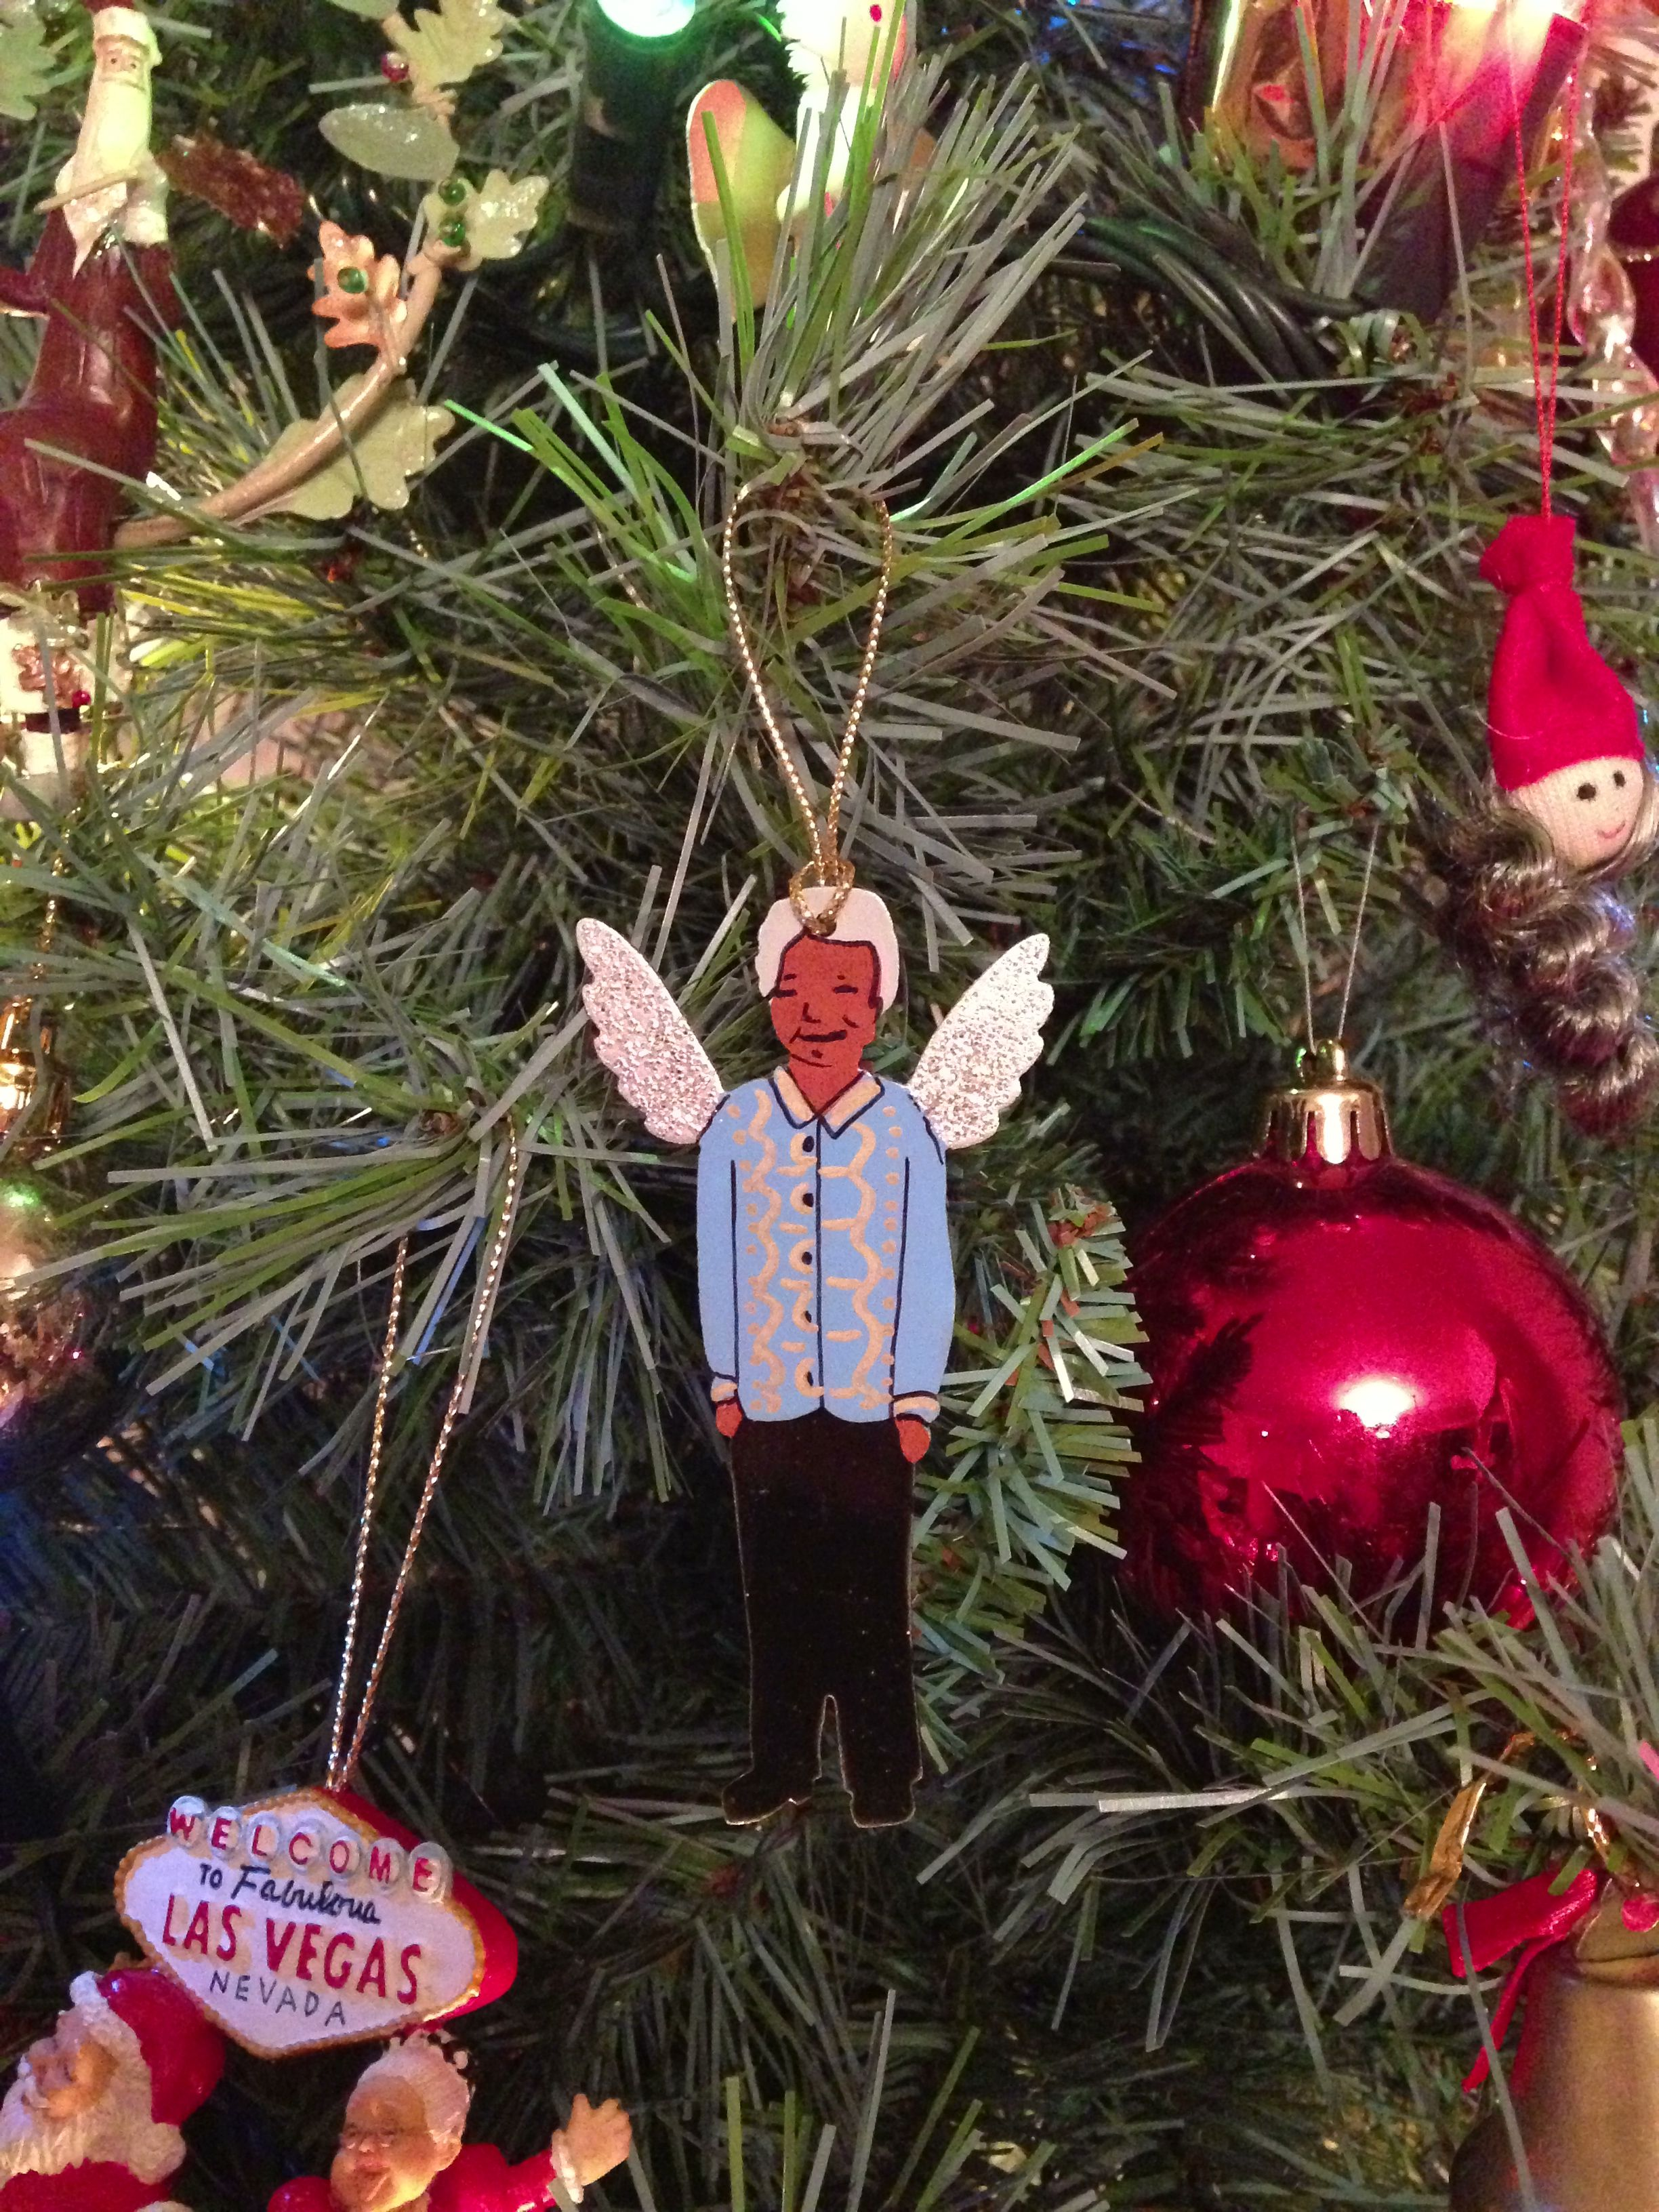 Nelson Mandela Angel Decoration On My Tree Bought In South Africa Last Christmas Christmas Decorations Christmas In South Africa Christmas Time